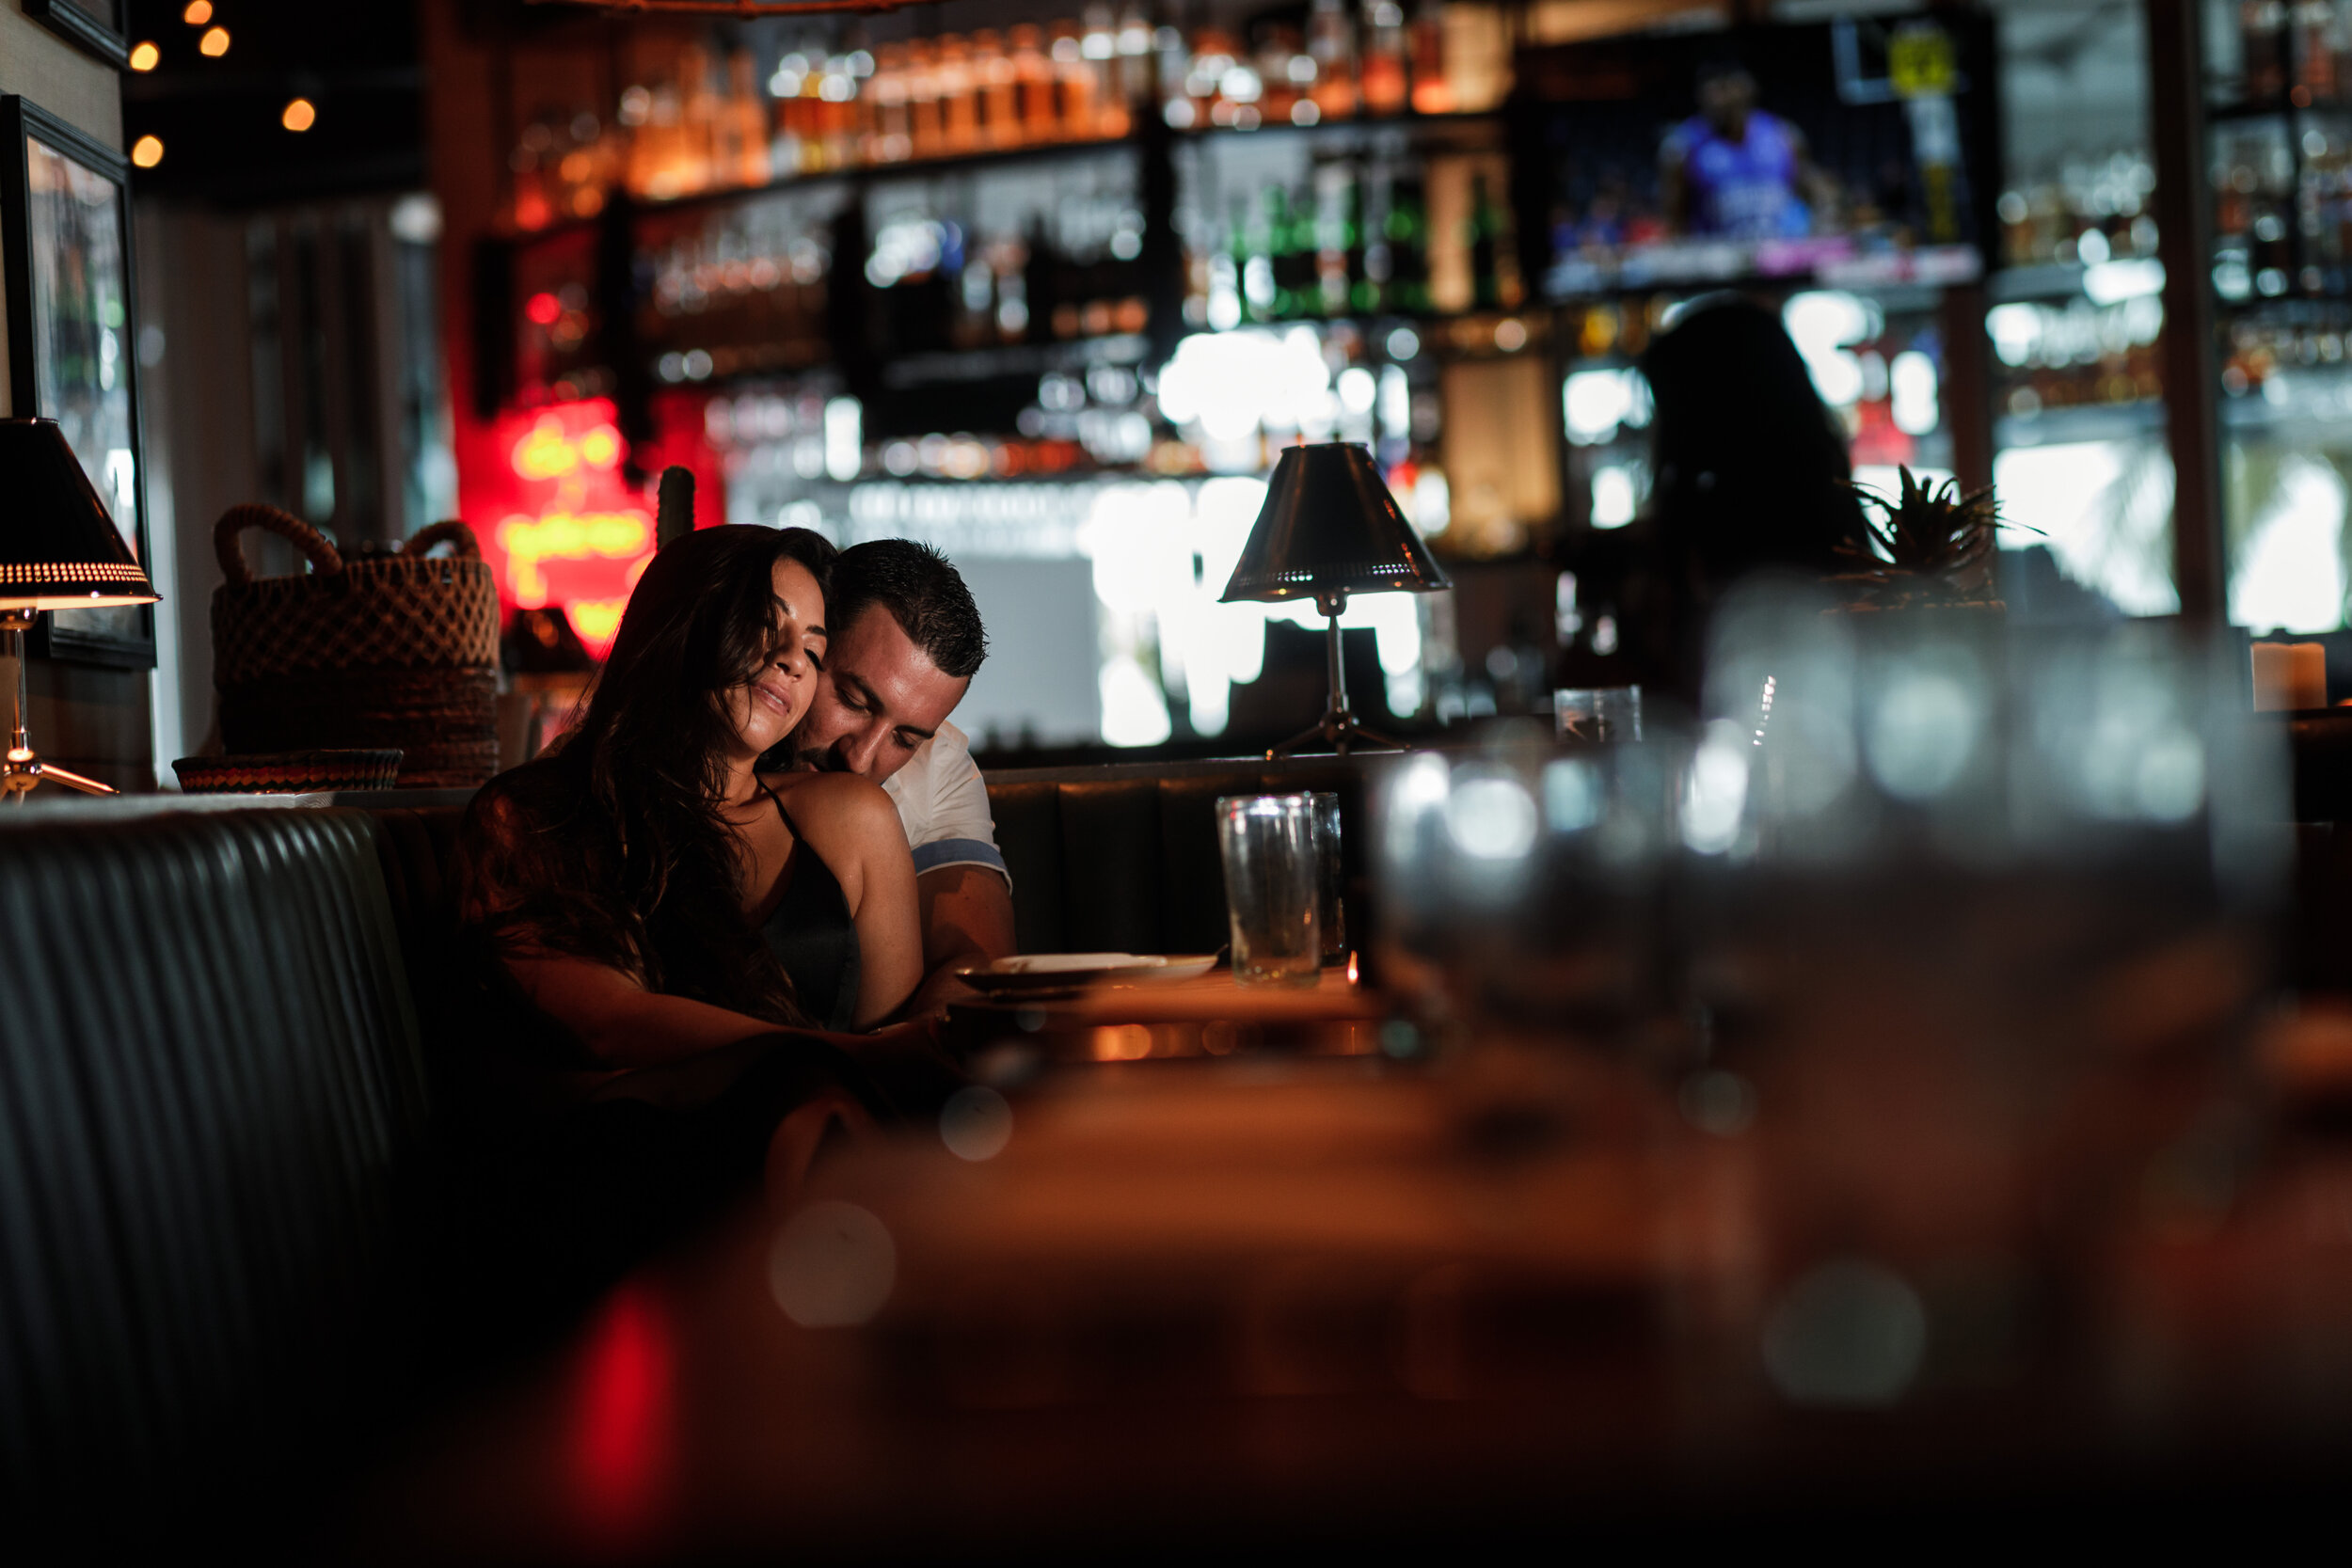 This steamy couple chose to have their engagement session at their favorite Mexican restaurant. Making out and tequila - what's better than that?